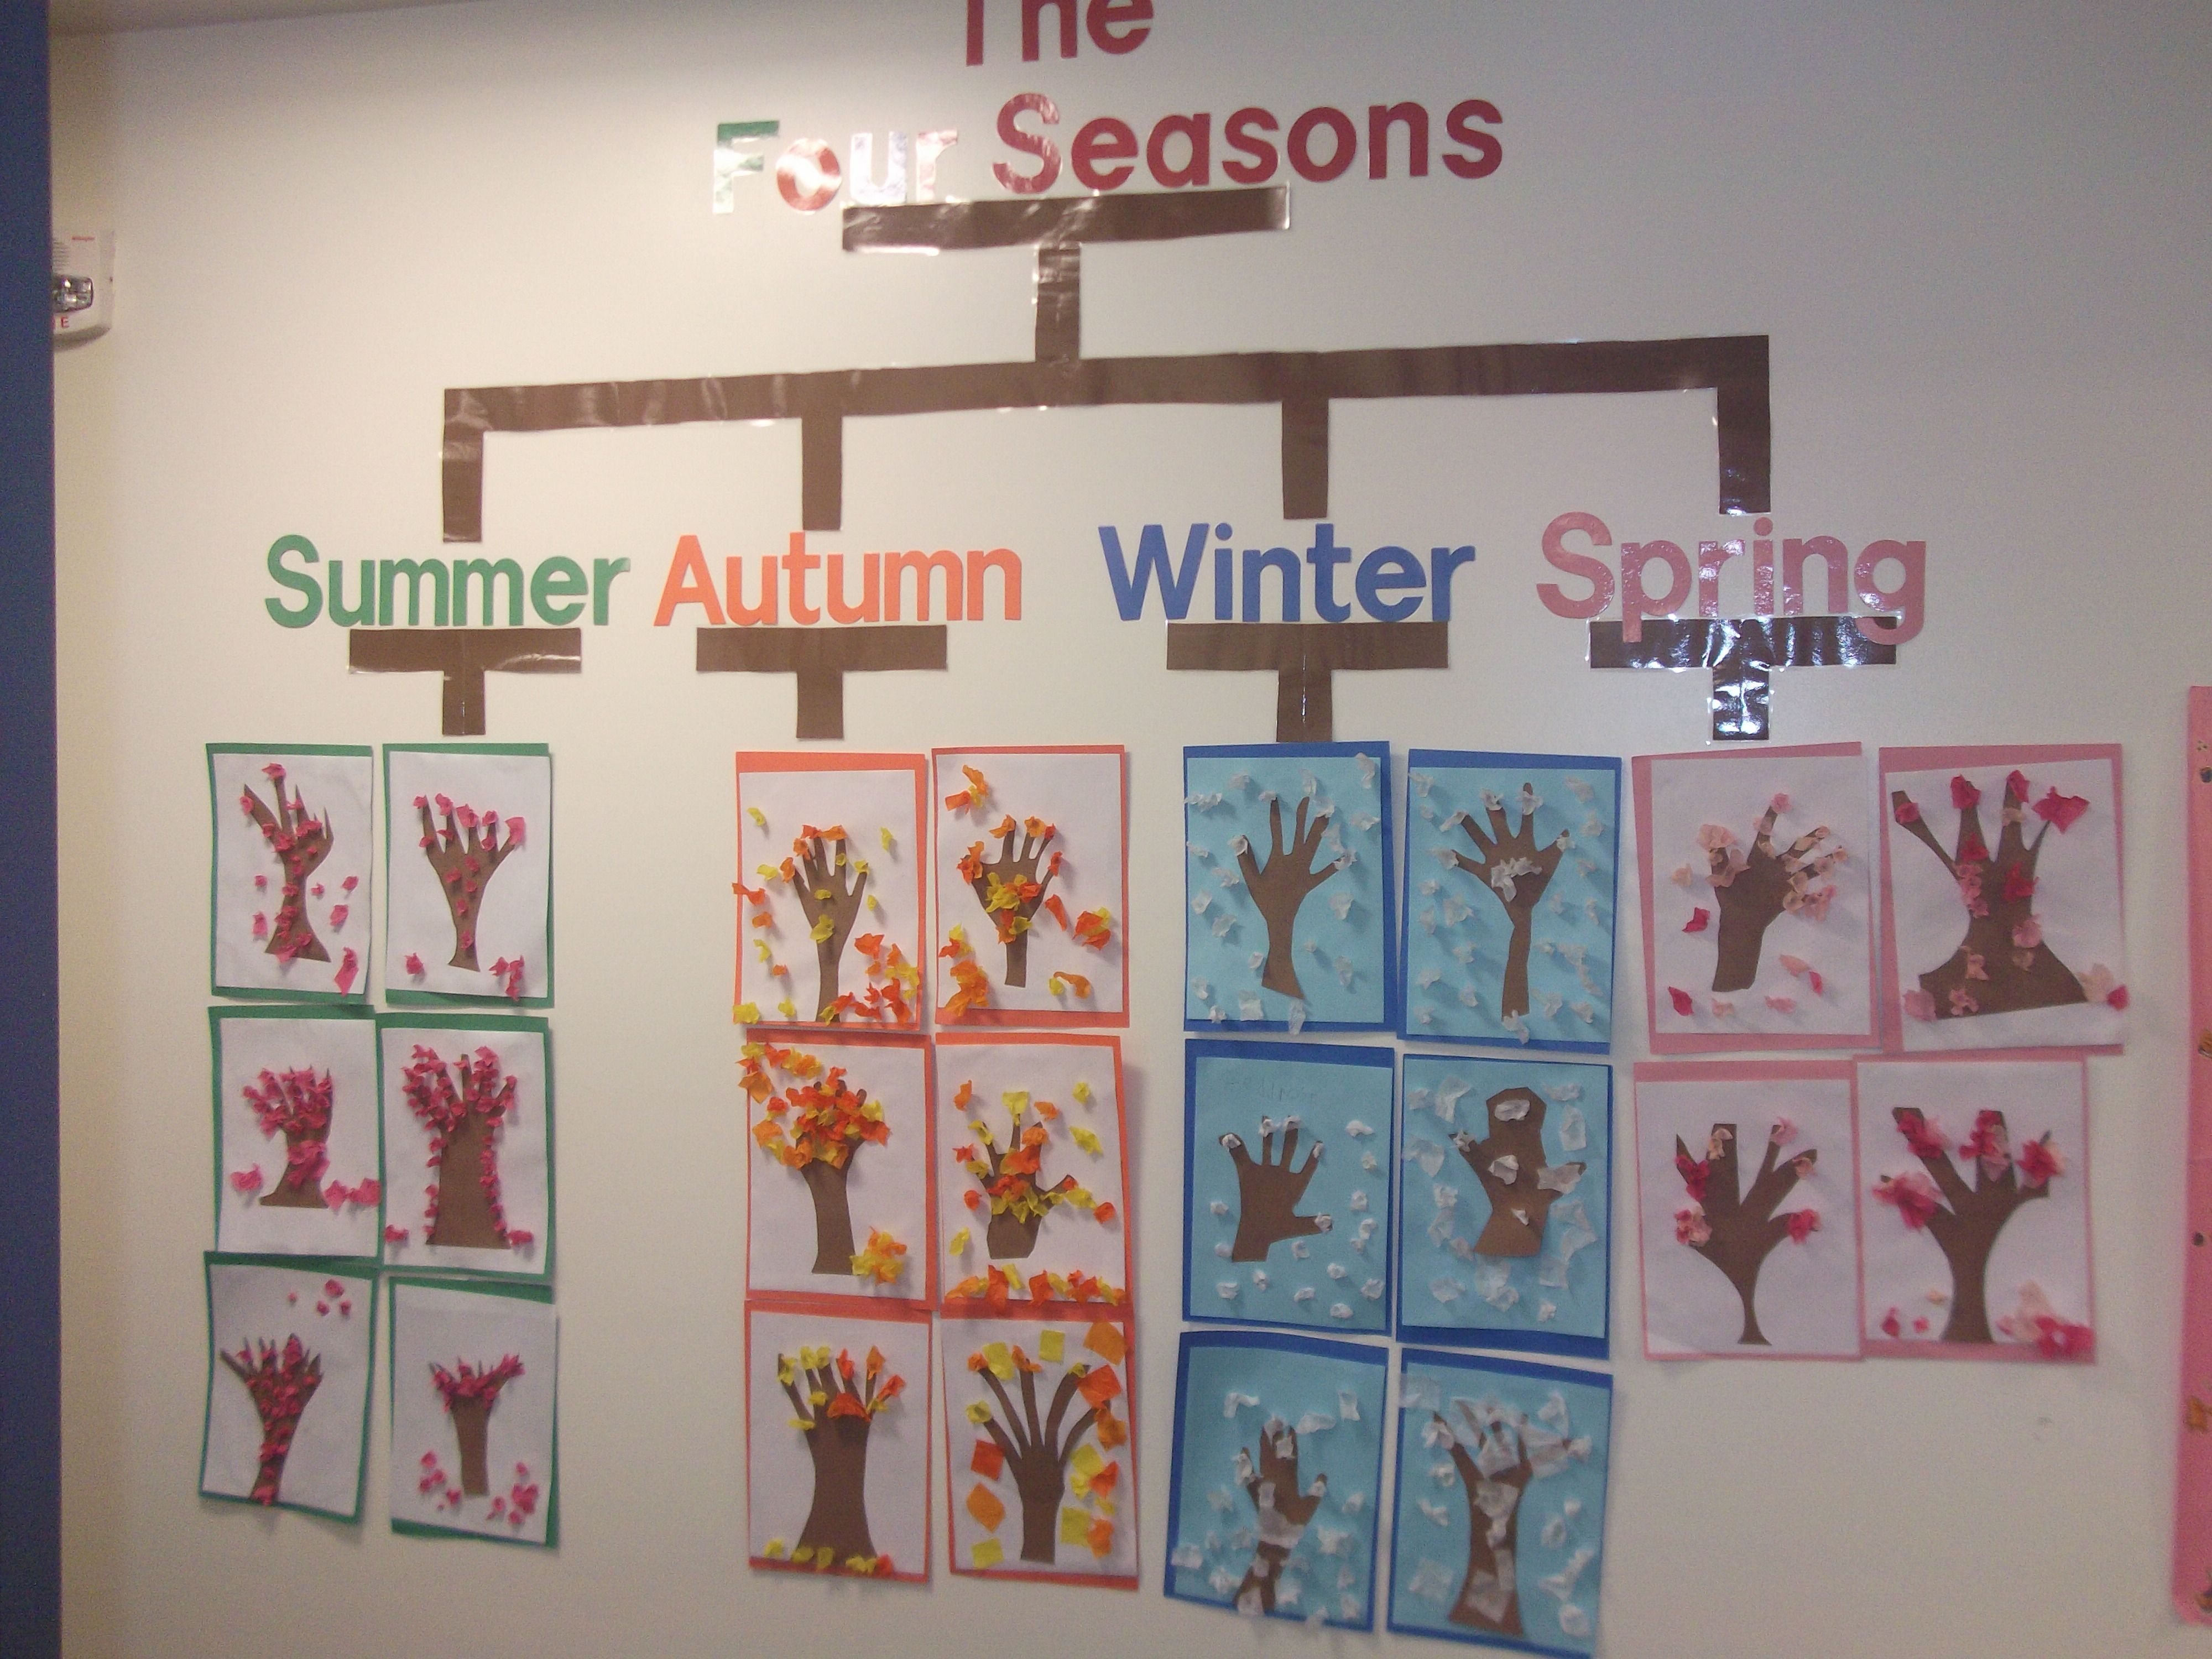 4 seasons tree map  1st grade  I created this myself      School     4 seasons tree map  1st grade  I created this myself